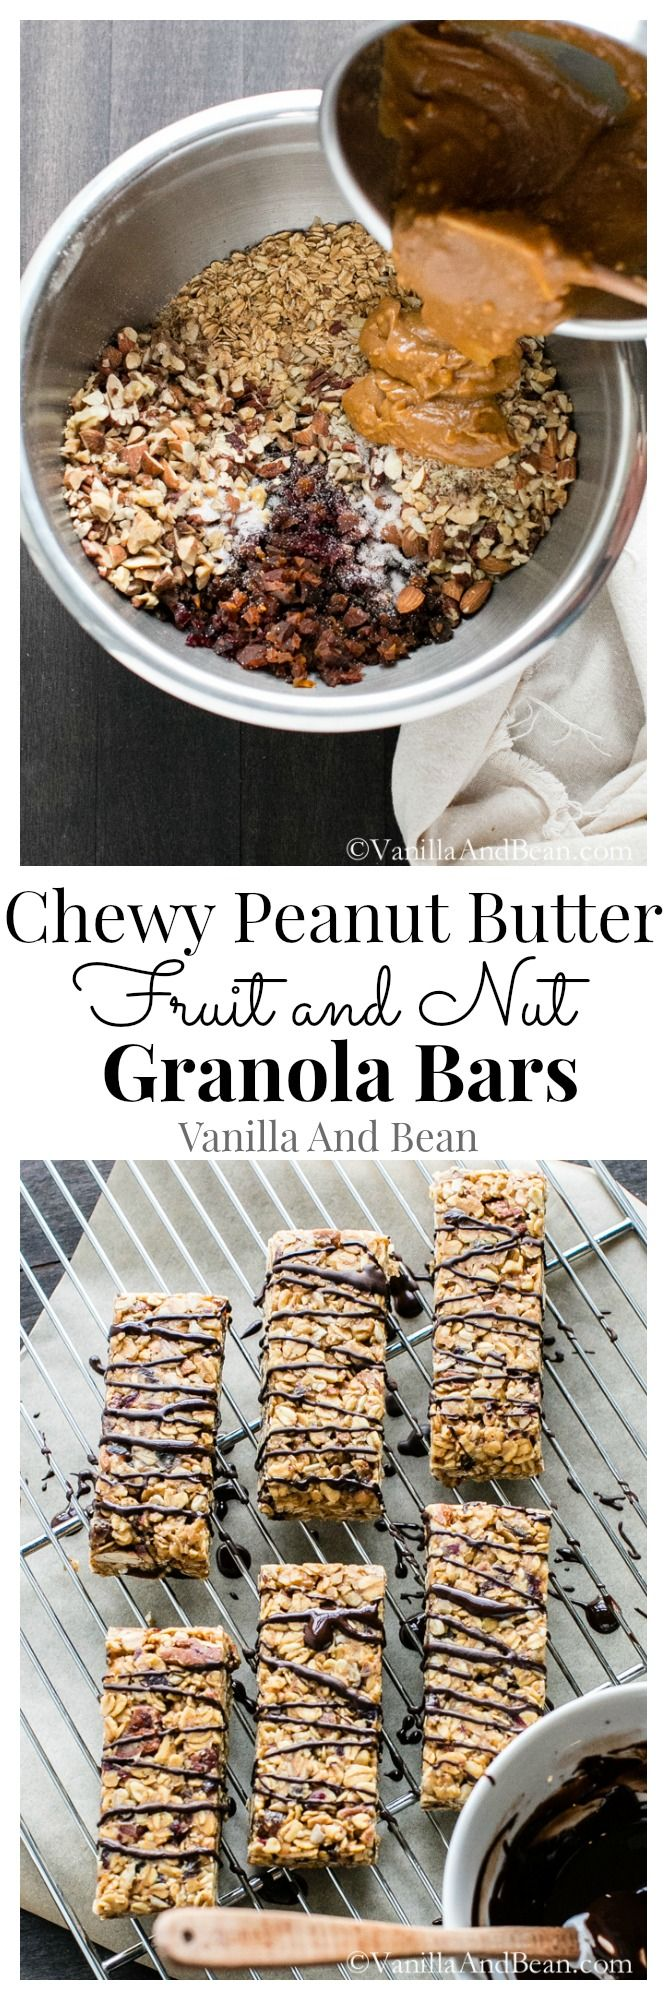 Chewy Peanut Butter Fruit and Nut Granola Bars: An easy grab and go snack for your healthy lifestyle! | Vanilla And Bean